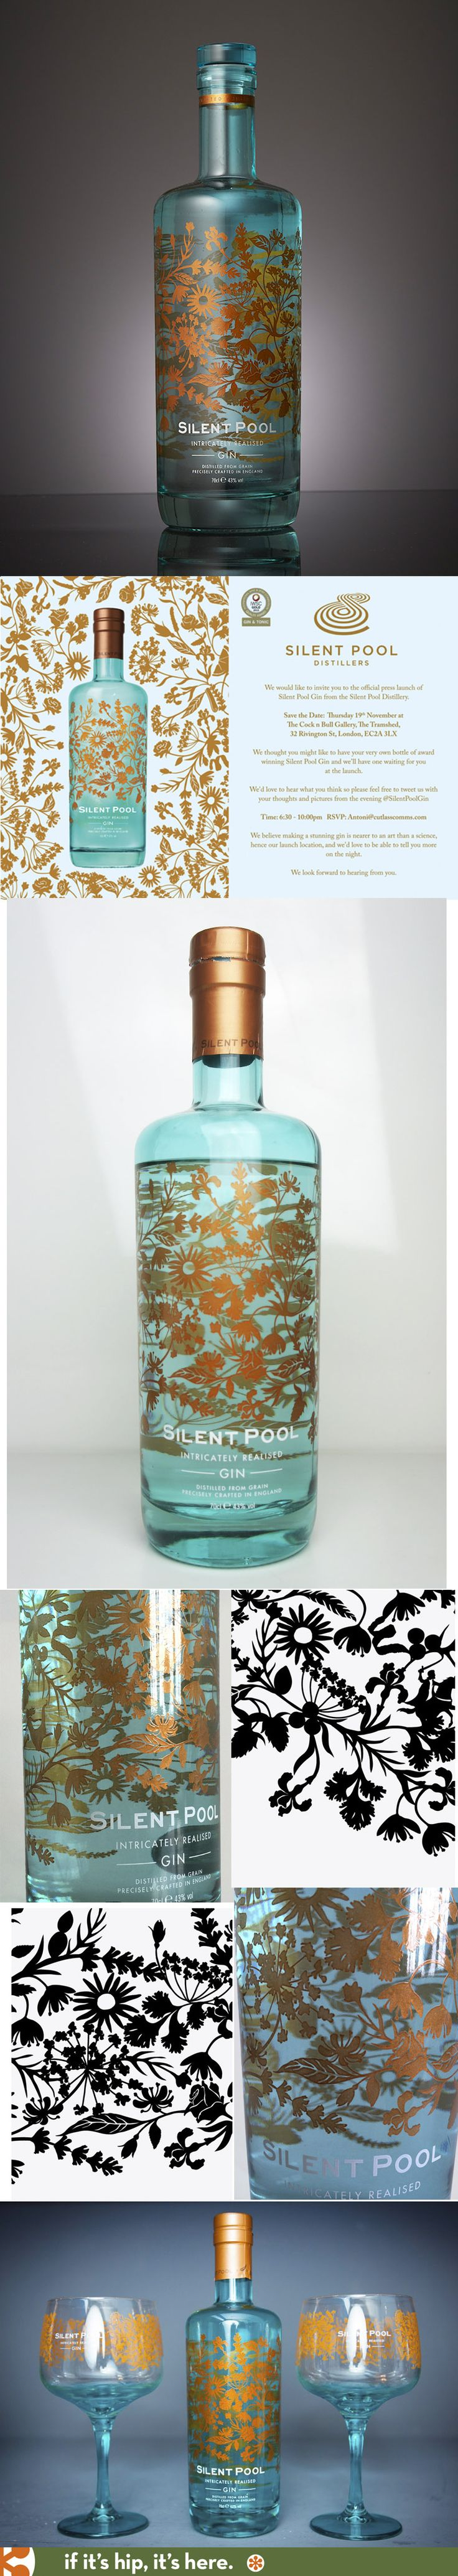 Silent Pool Gin with bottle design by Laura Barrett and agency SeymourPowell PD